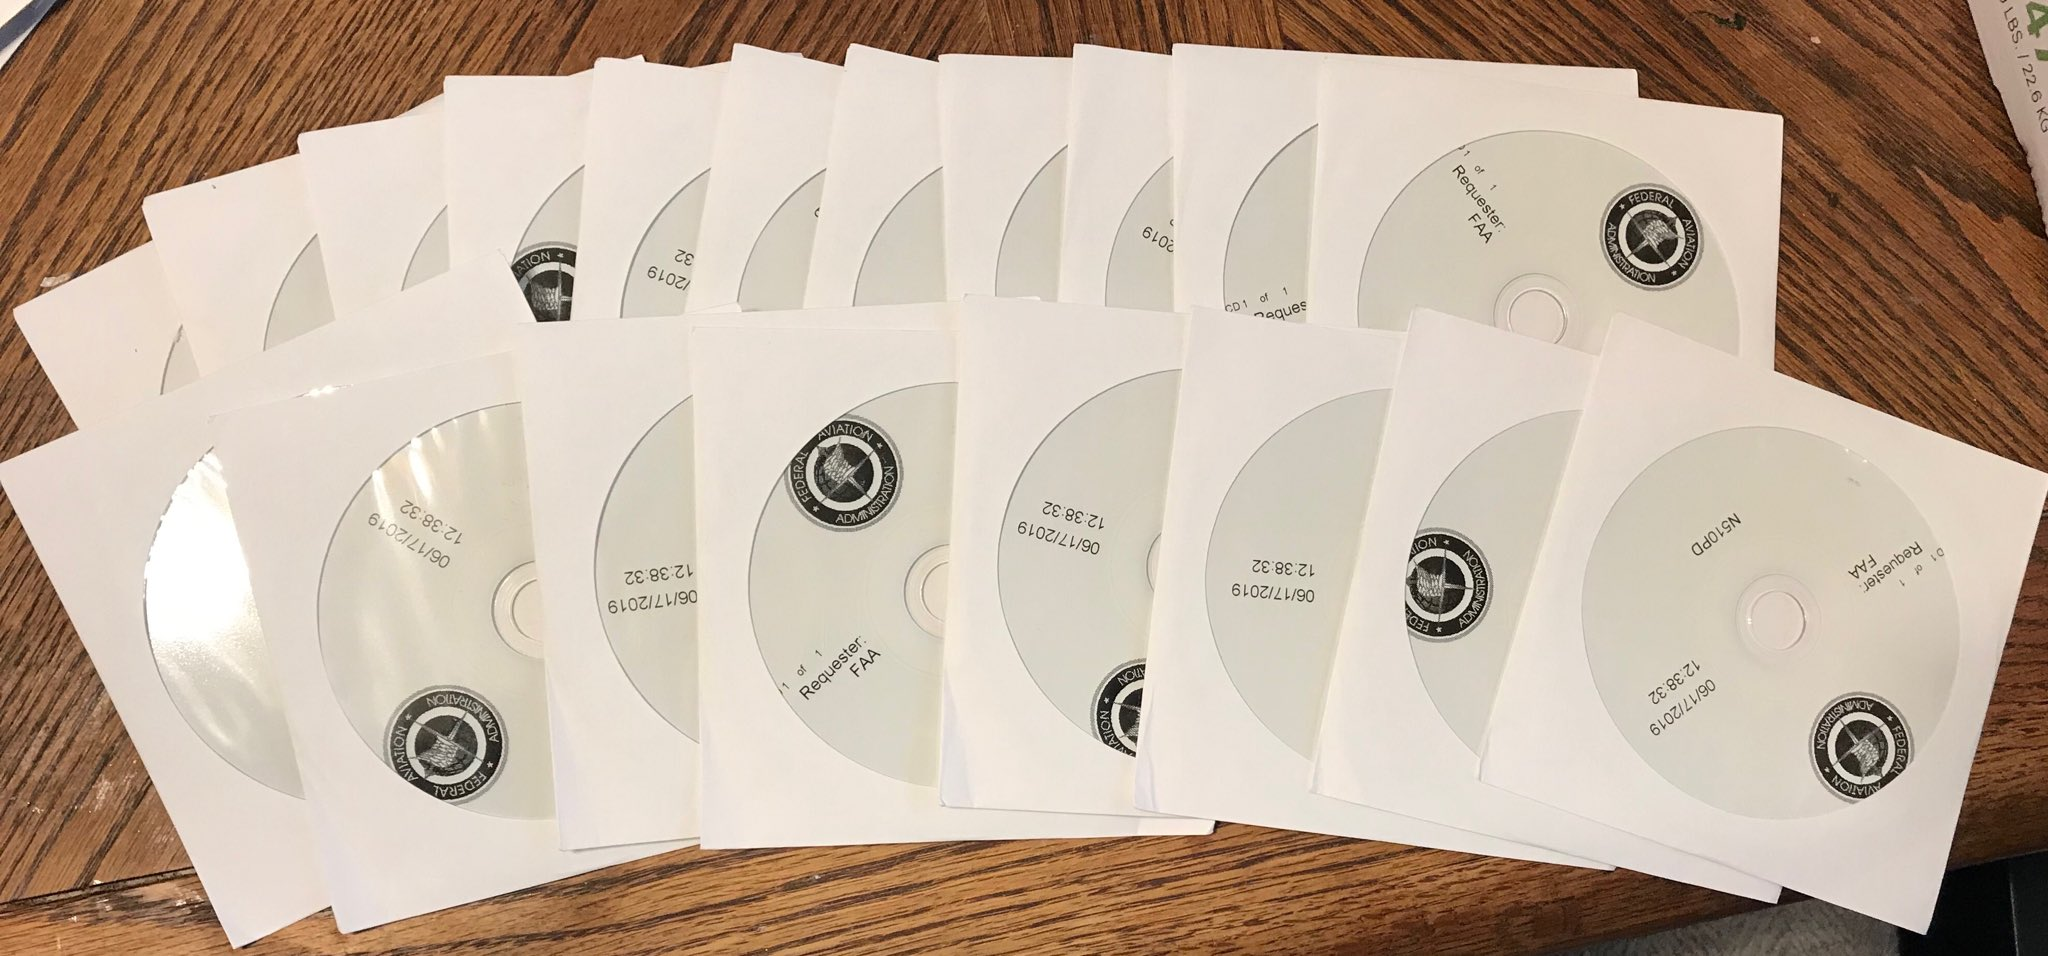 A large number of CD-ROMS in envelopes on a table